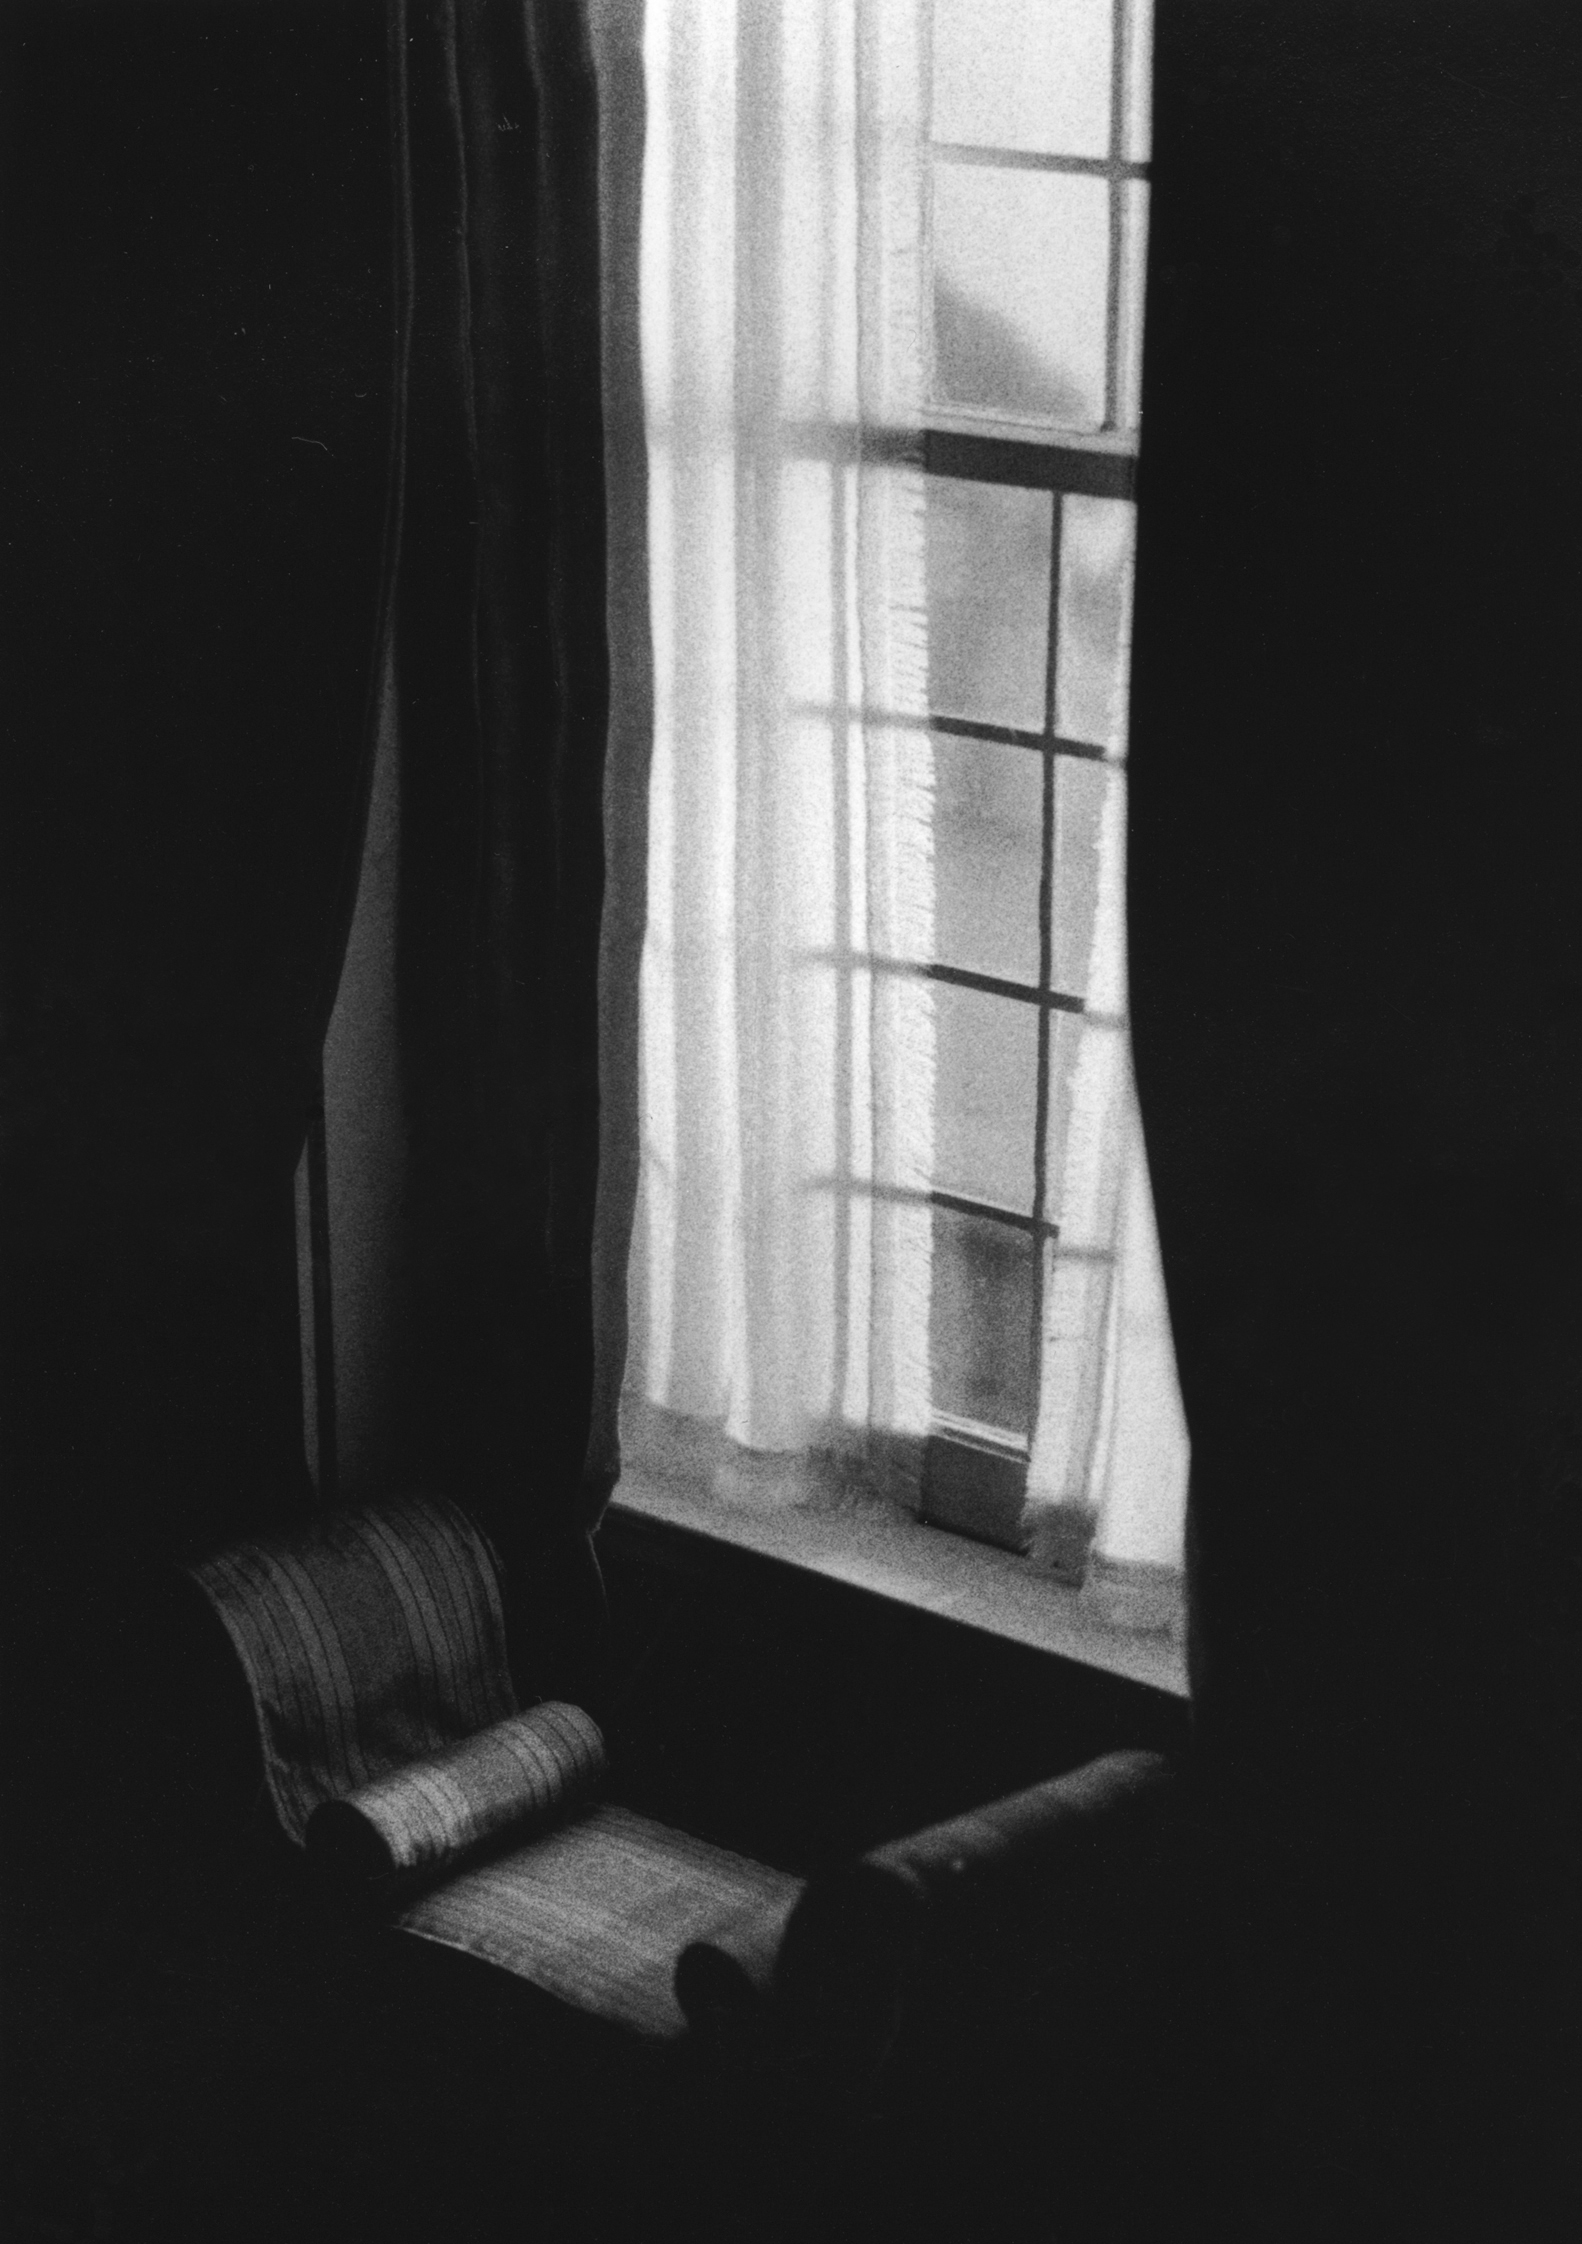 Chaise by Window